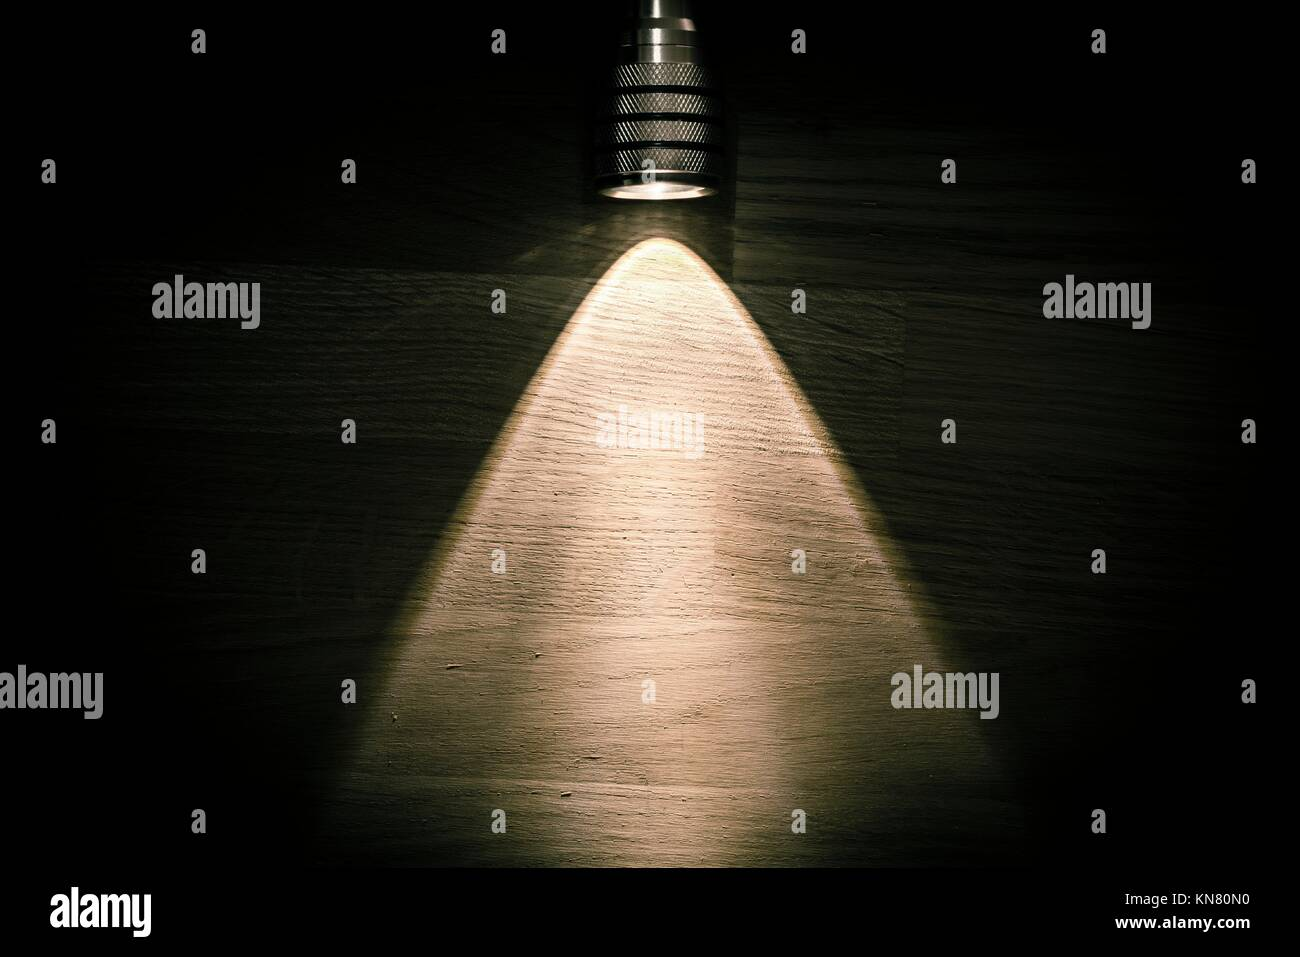 Flashlight and a beam of light in darkness. A modern led light with bright projection on dark wood table. Surface - Stock Image